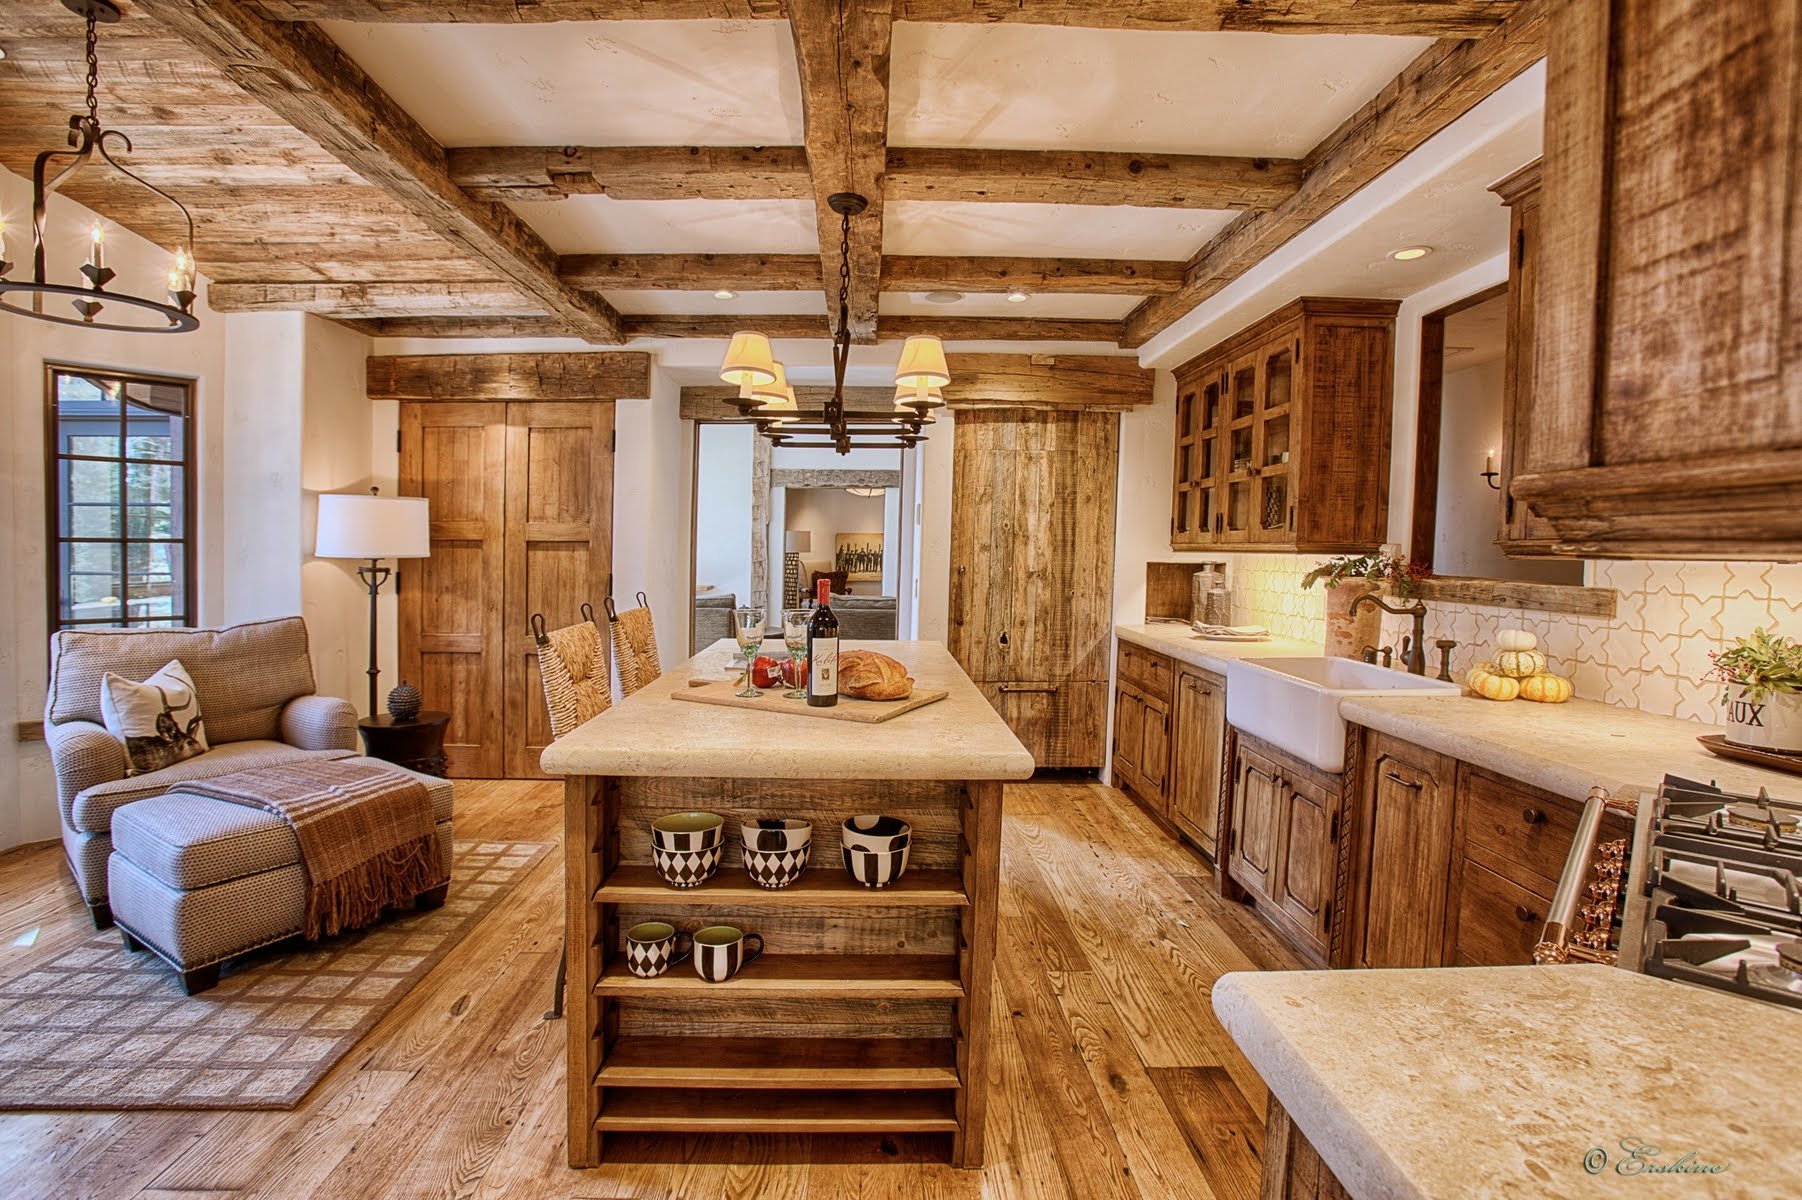 Undeniable Rustic Kitchen Interior With Wooden Cabinets And Island Exposed Beams